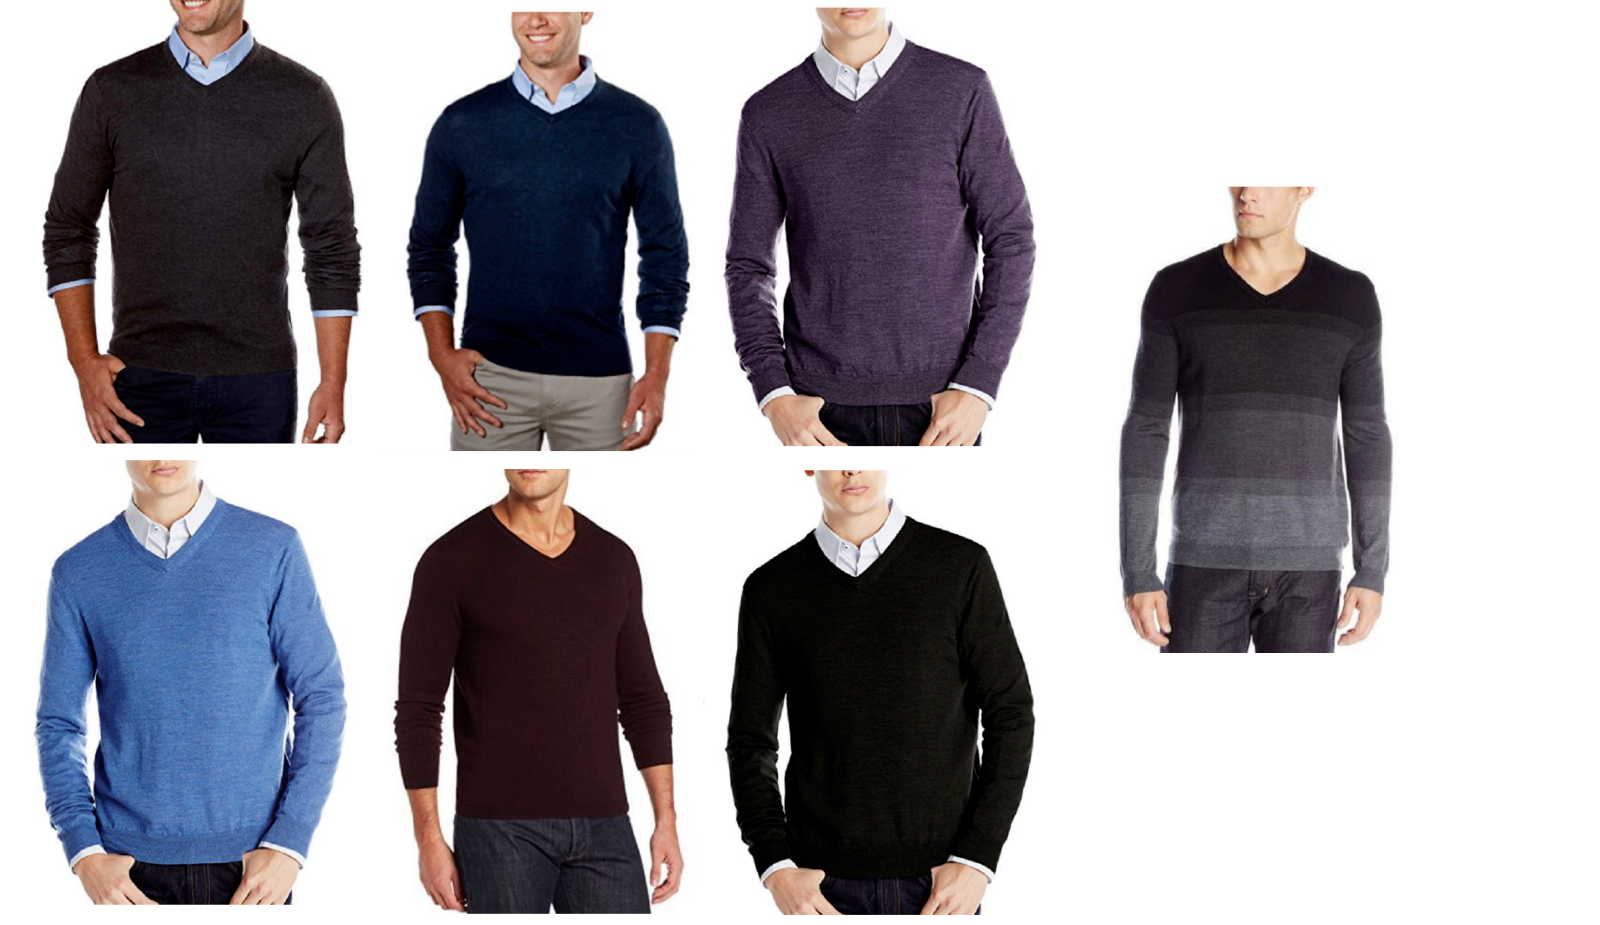 Calvin Klein Men's Lightweight Merino V-Neck Sweater